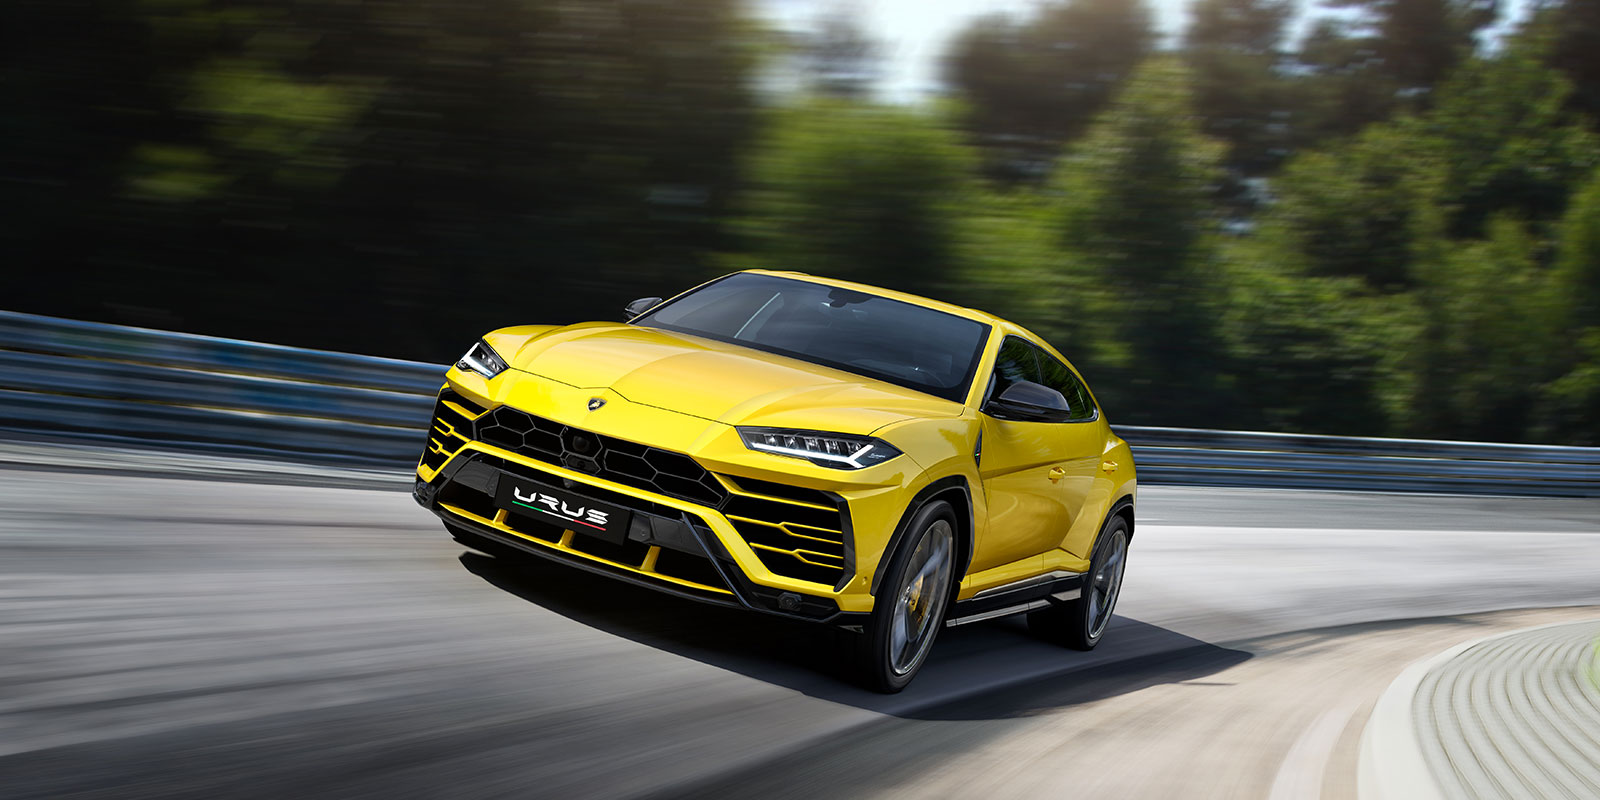 Lamborghini Urus - The World's First Super Sport Utility Vehicle image 2